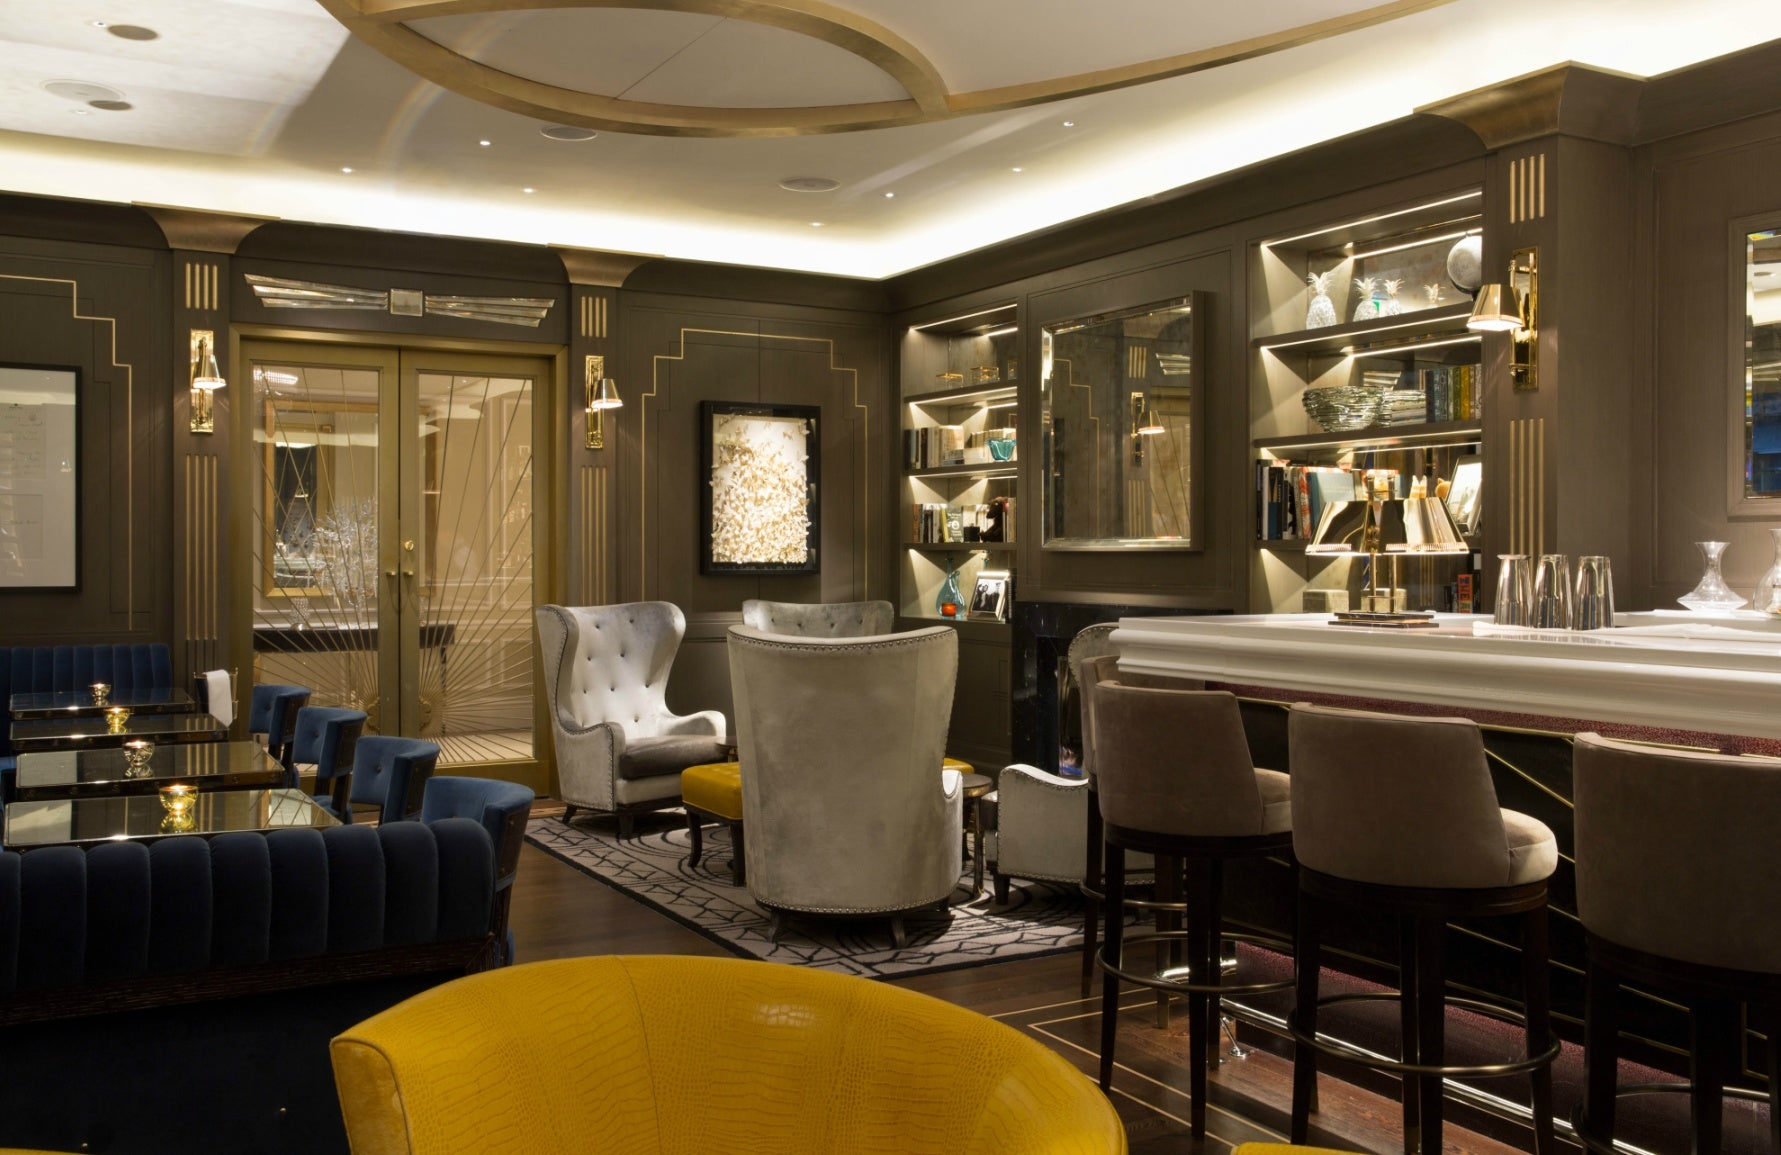 Spinocchia Freund | Meet The Designer | The Churchill Bar | The Luxurist | LuxDeco.com